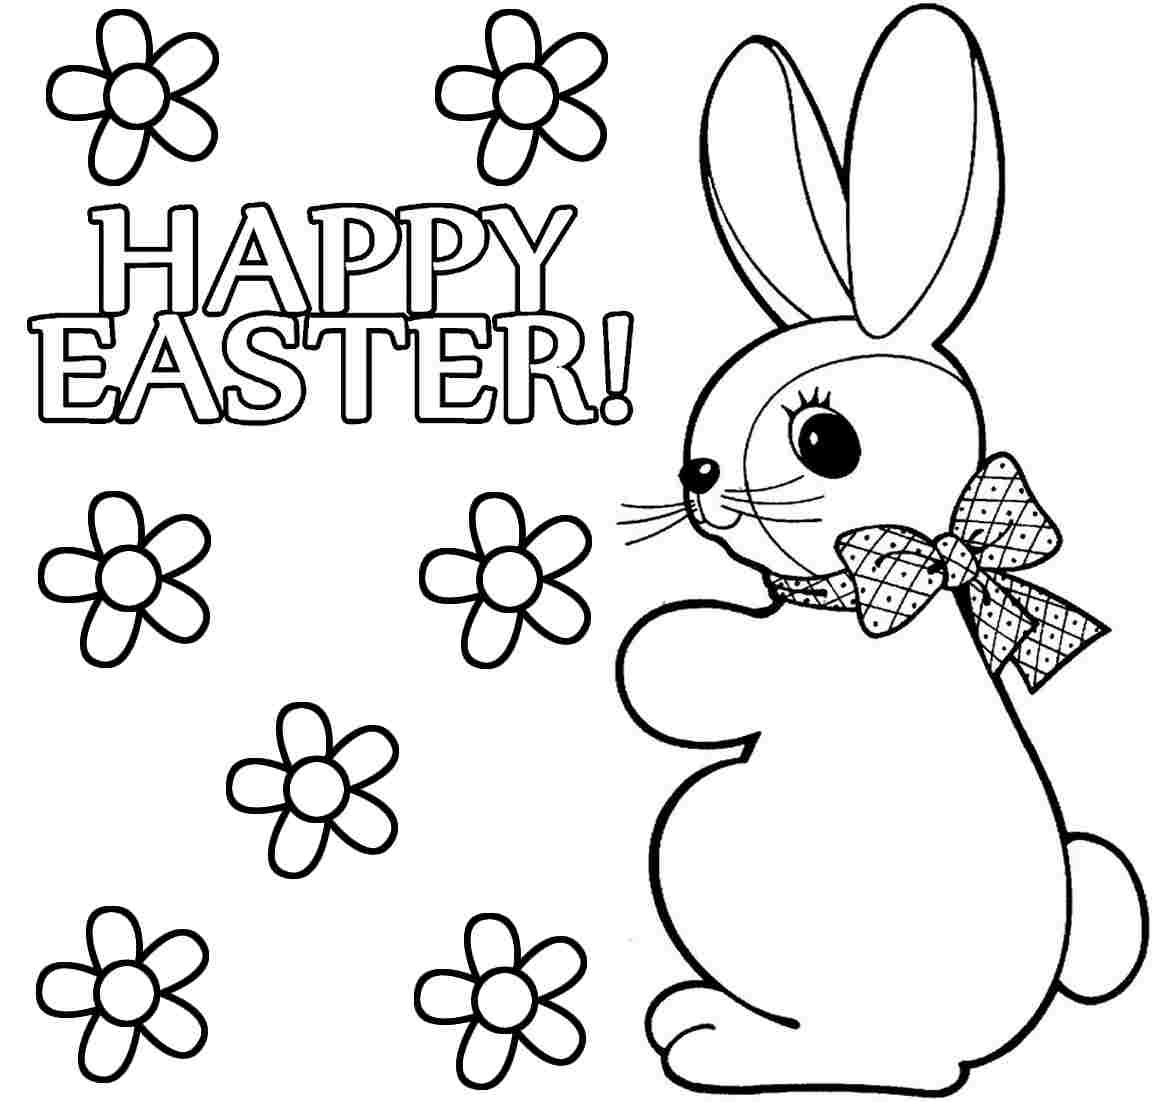 Easy Easter Coloring Pages At Getdrawings Com Free For Personal